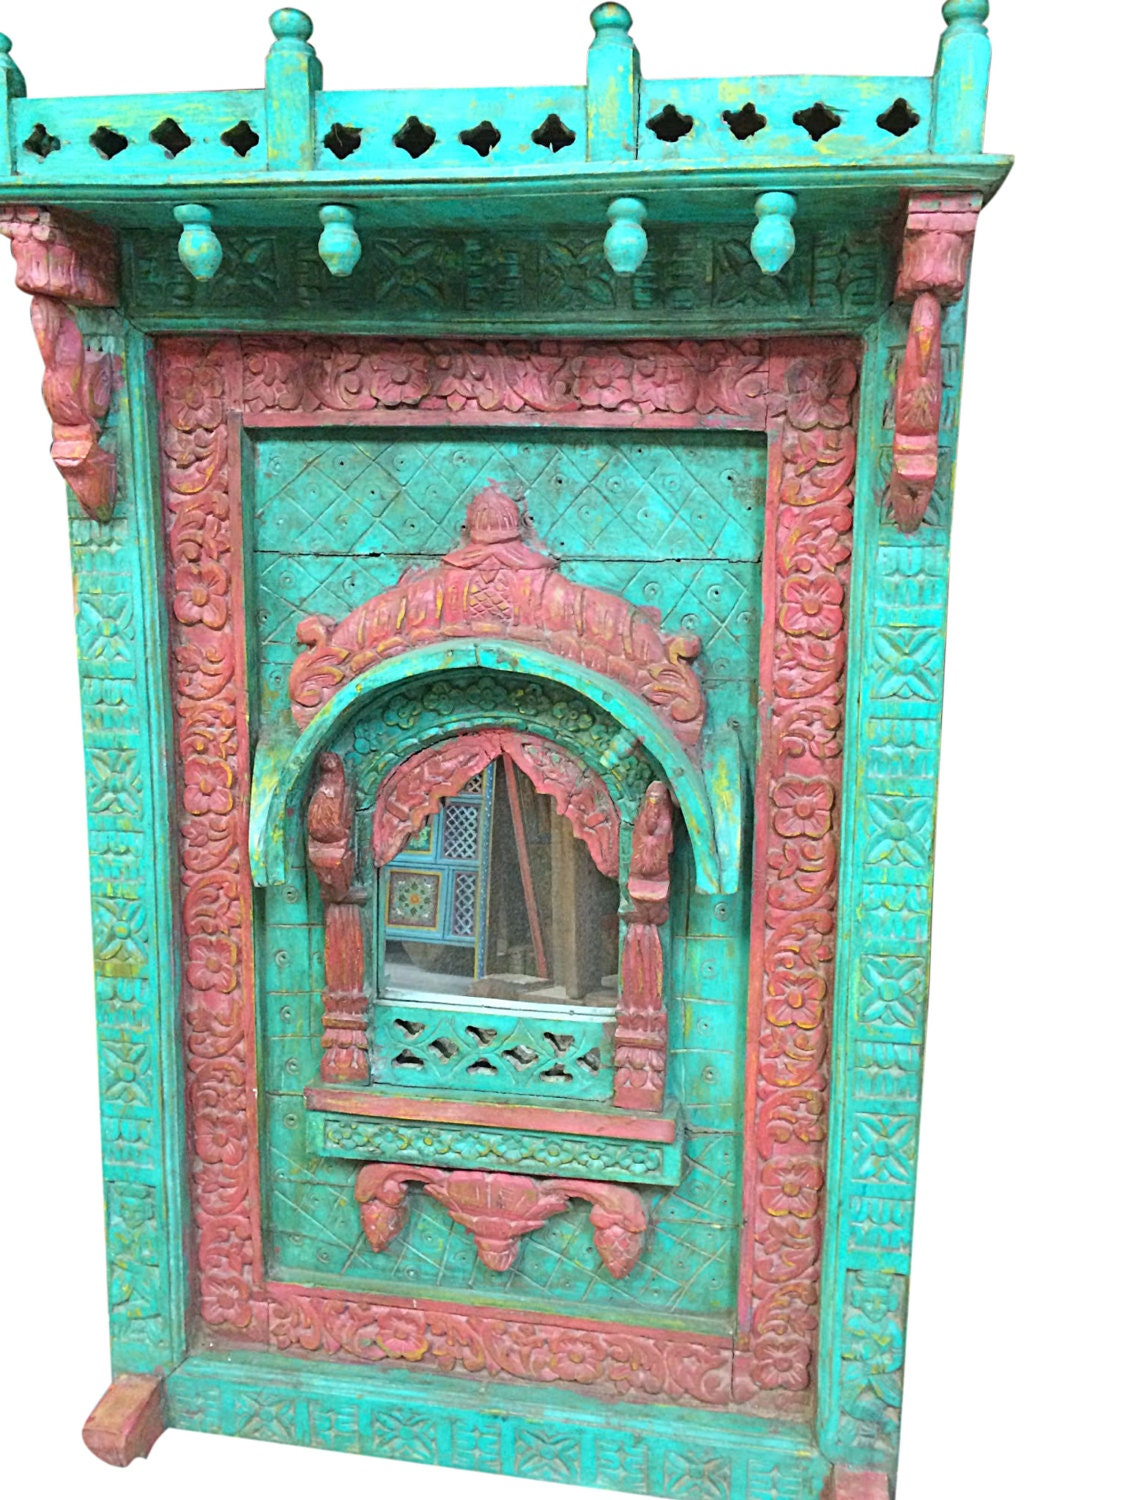 Antique Indian Arched Mirror Frame Jharokha Wall Decor Red